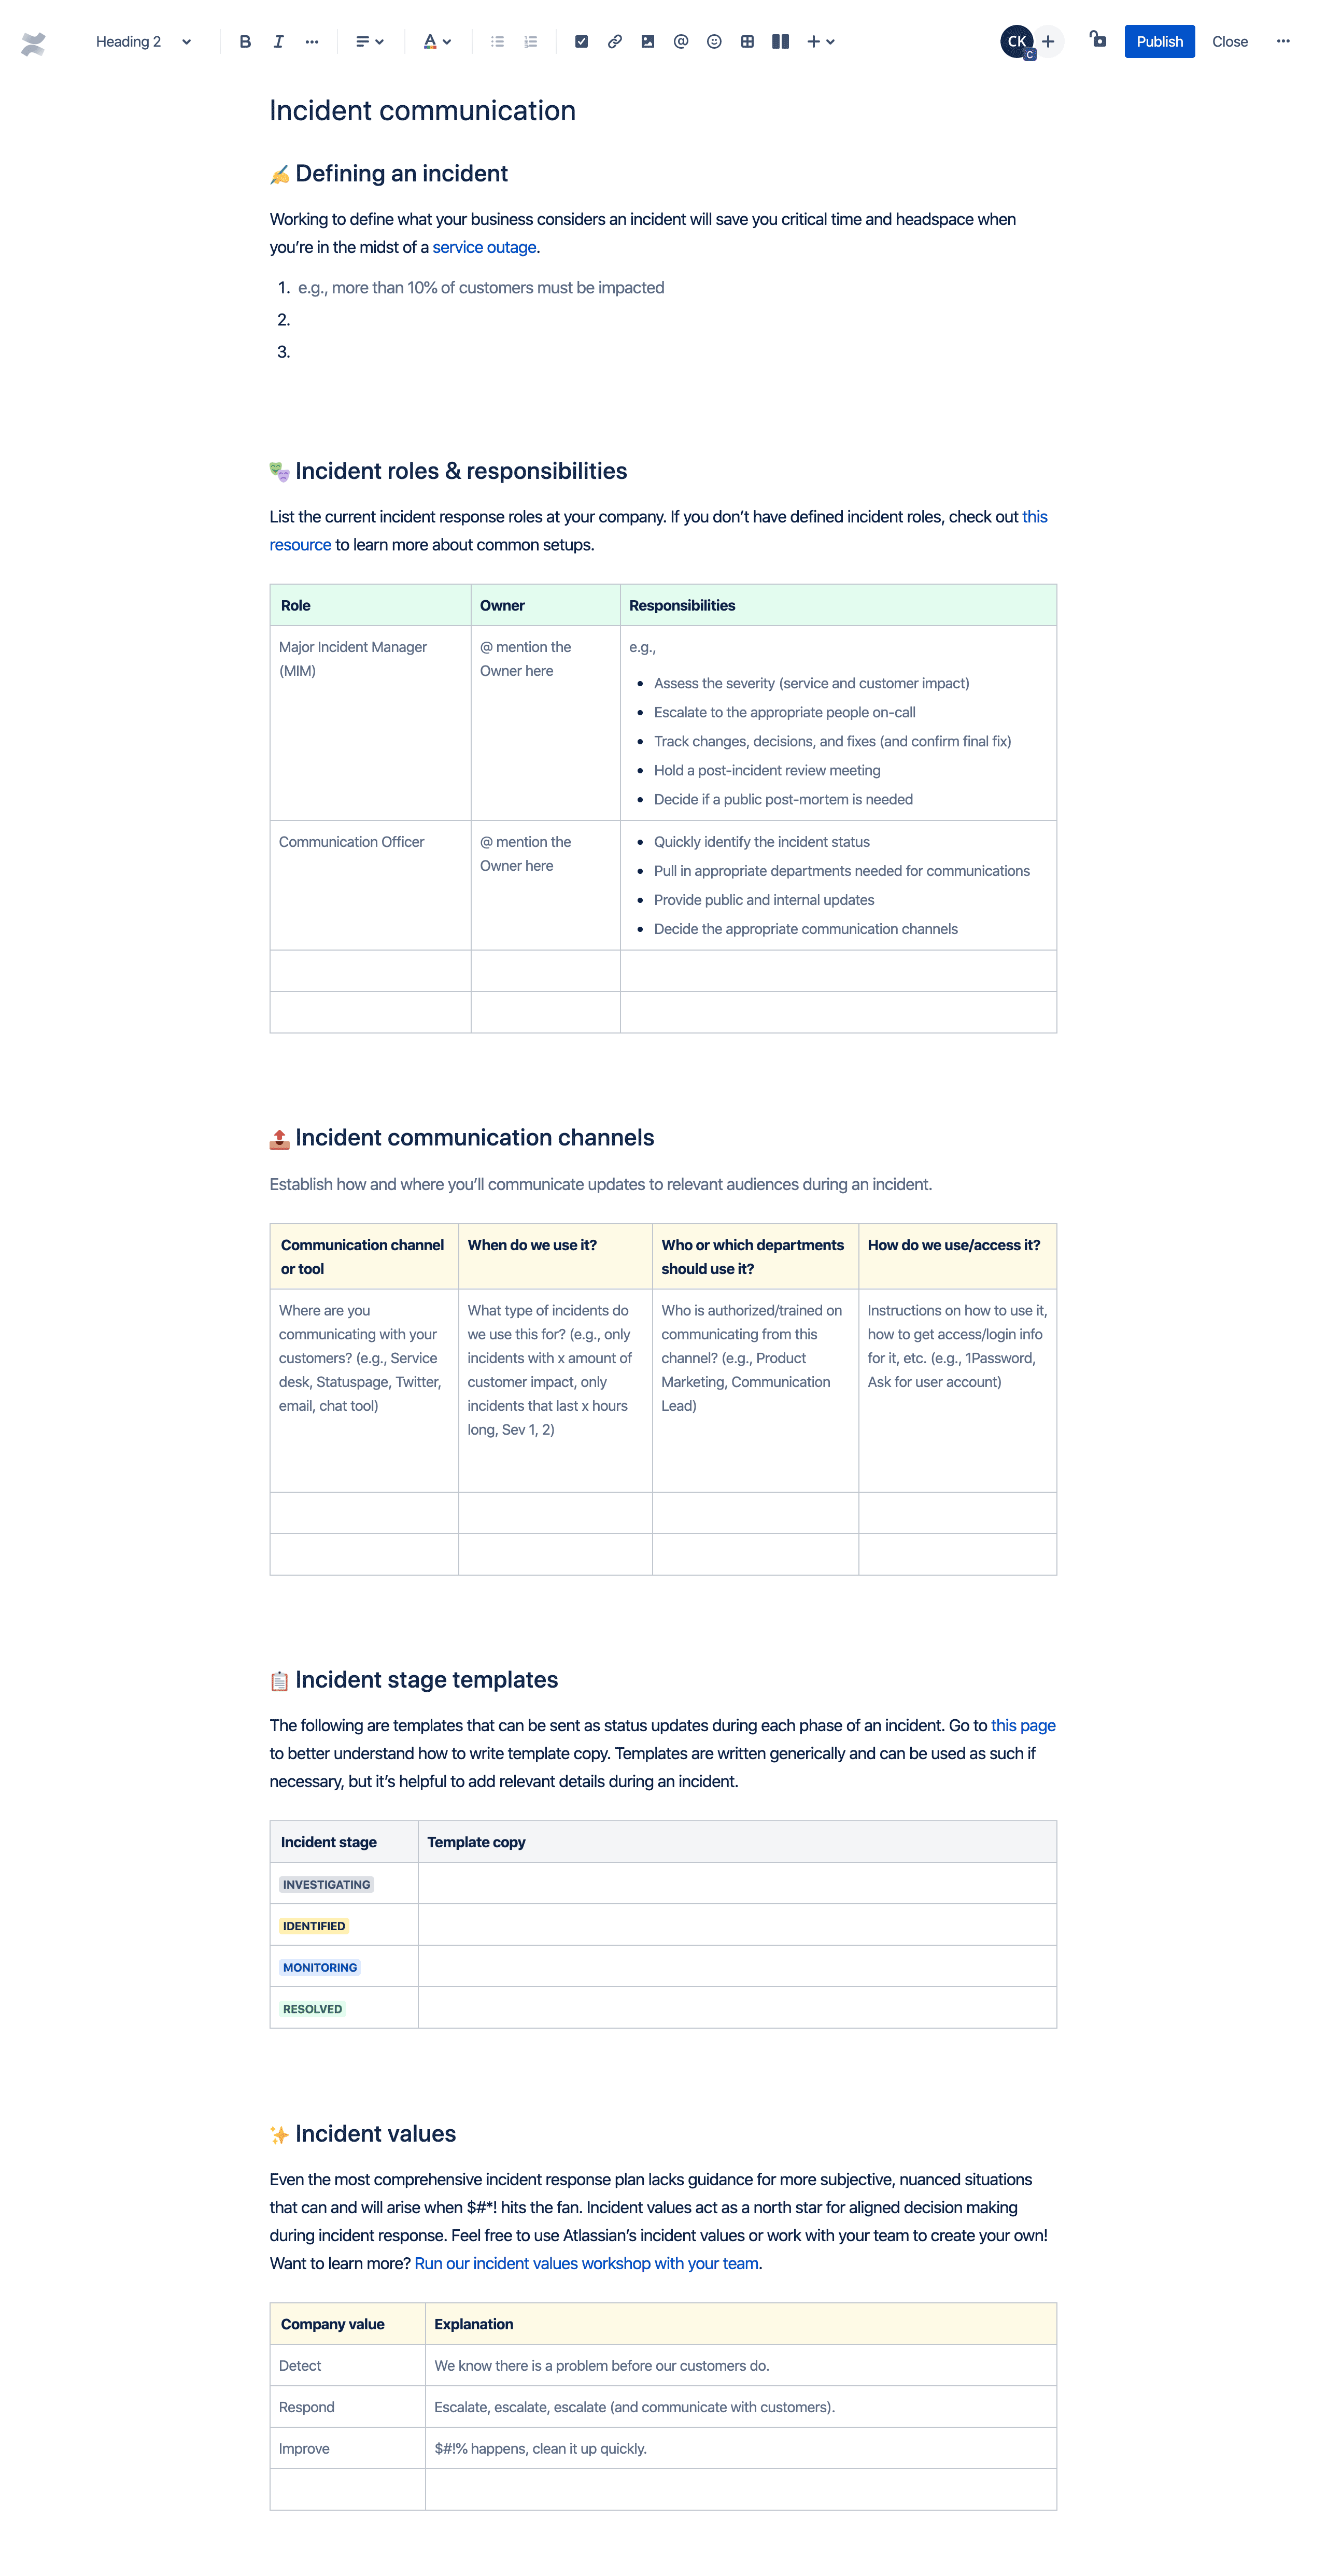 Incident communication template